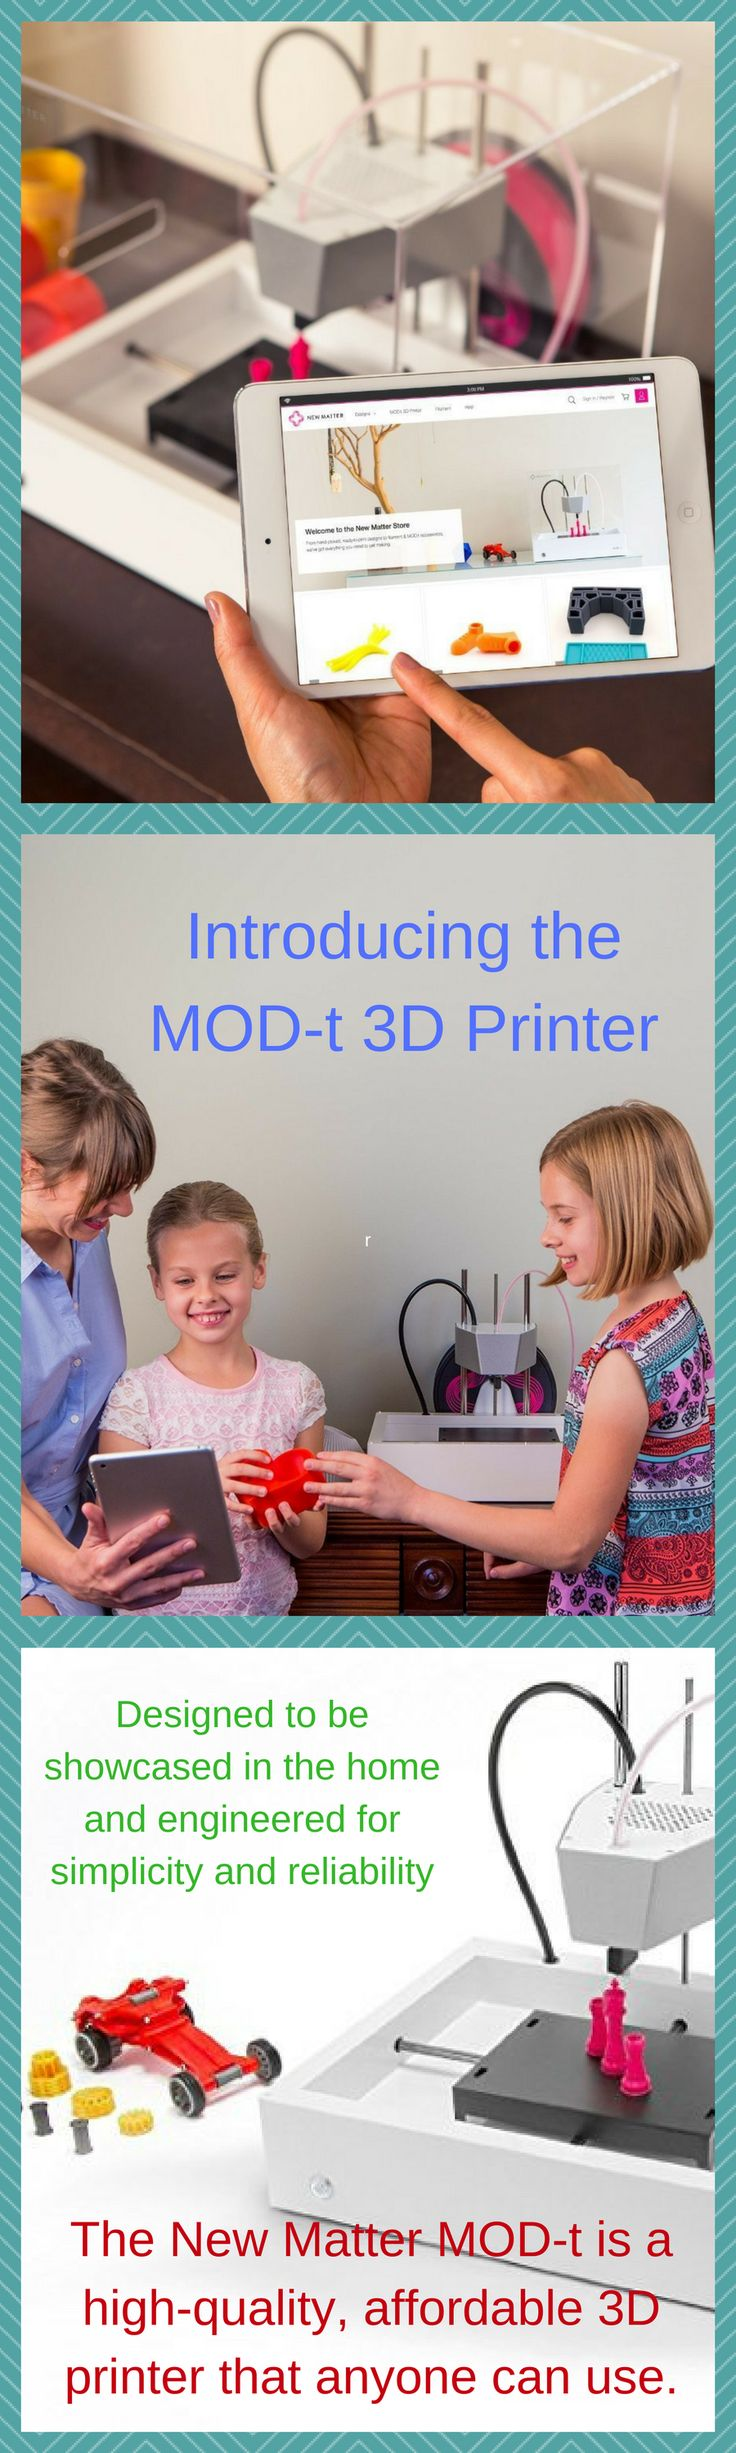 Introducing the MOD-t 3D Printer Designed to be showcased in the home and engineered for simplicity and reliability. The New Matter MOD-t is a high-quality, affordable 3D printer that anyone can use. LEARN MOREBUY NOW FOR $299 Starter Scanner Bundle - Includes 1x MOD-t Desktop 3D Printer and 1x Matter and Form 3D Scanner